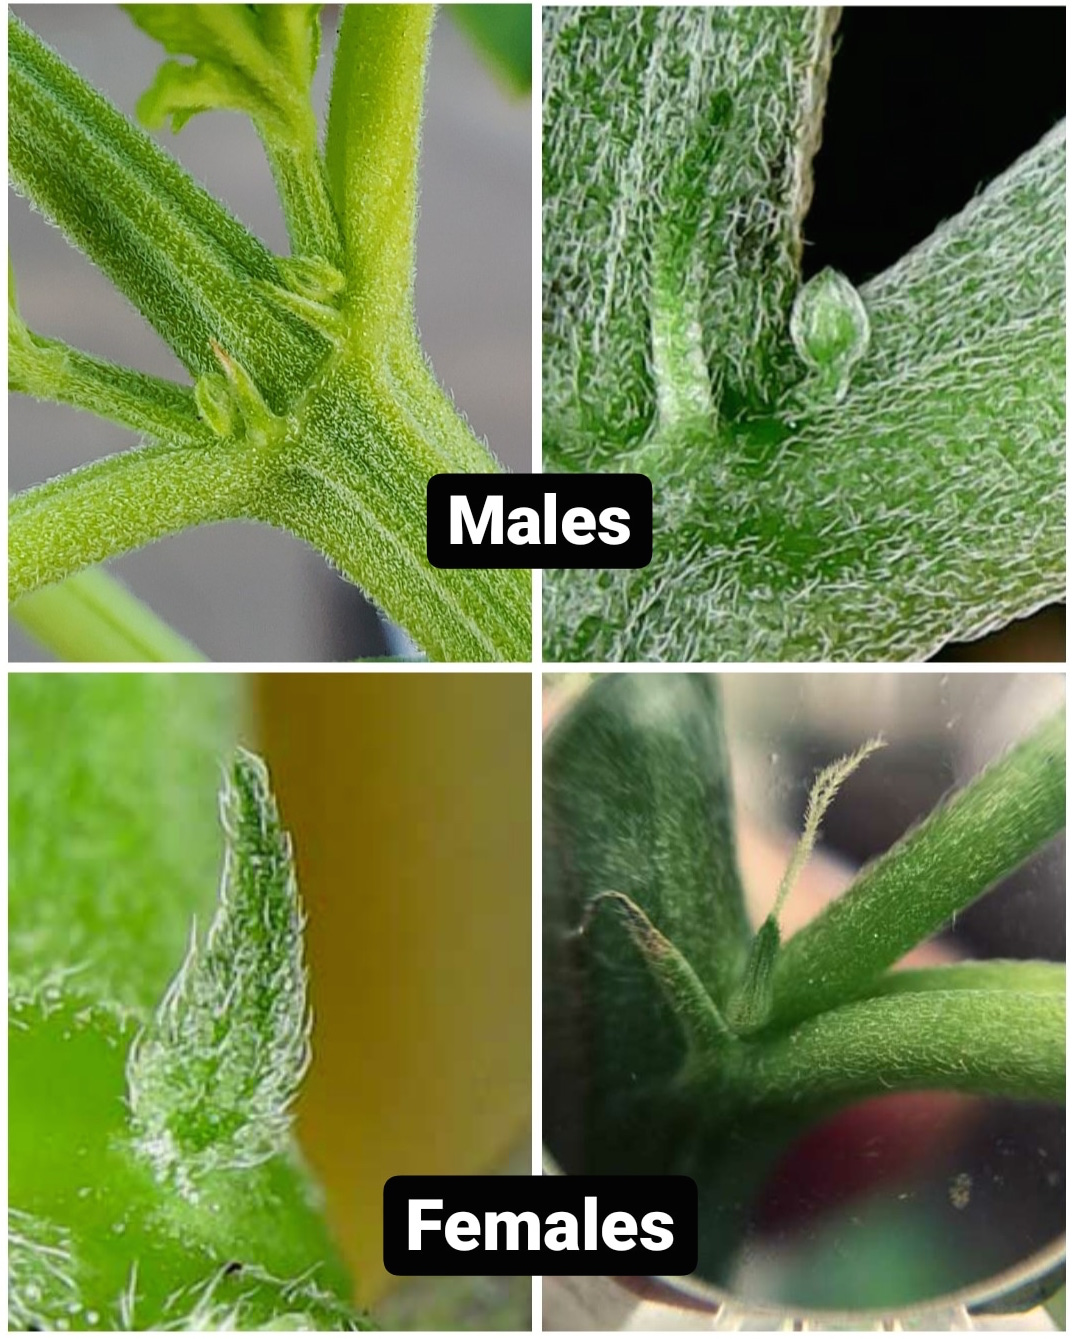 A four way image collage showing the difference between cannabis sex. The first image shows a close up of one of the nodes on the plant, coming out of the crook of the main stalk and auxiliary branch is a smaller rounded, spade like male preflower. The second image shows a close up of a male preflower that is sitting atop a stem. The third image shows a close up of a female preflower calyx, it has the shape of a pear. The fourth image shows a female preflower that has a white pistol or hair coming out of the top of the female preflower.